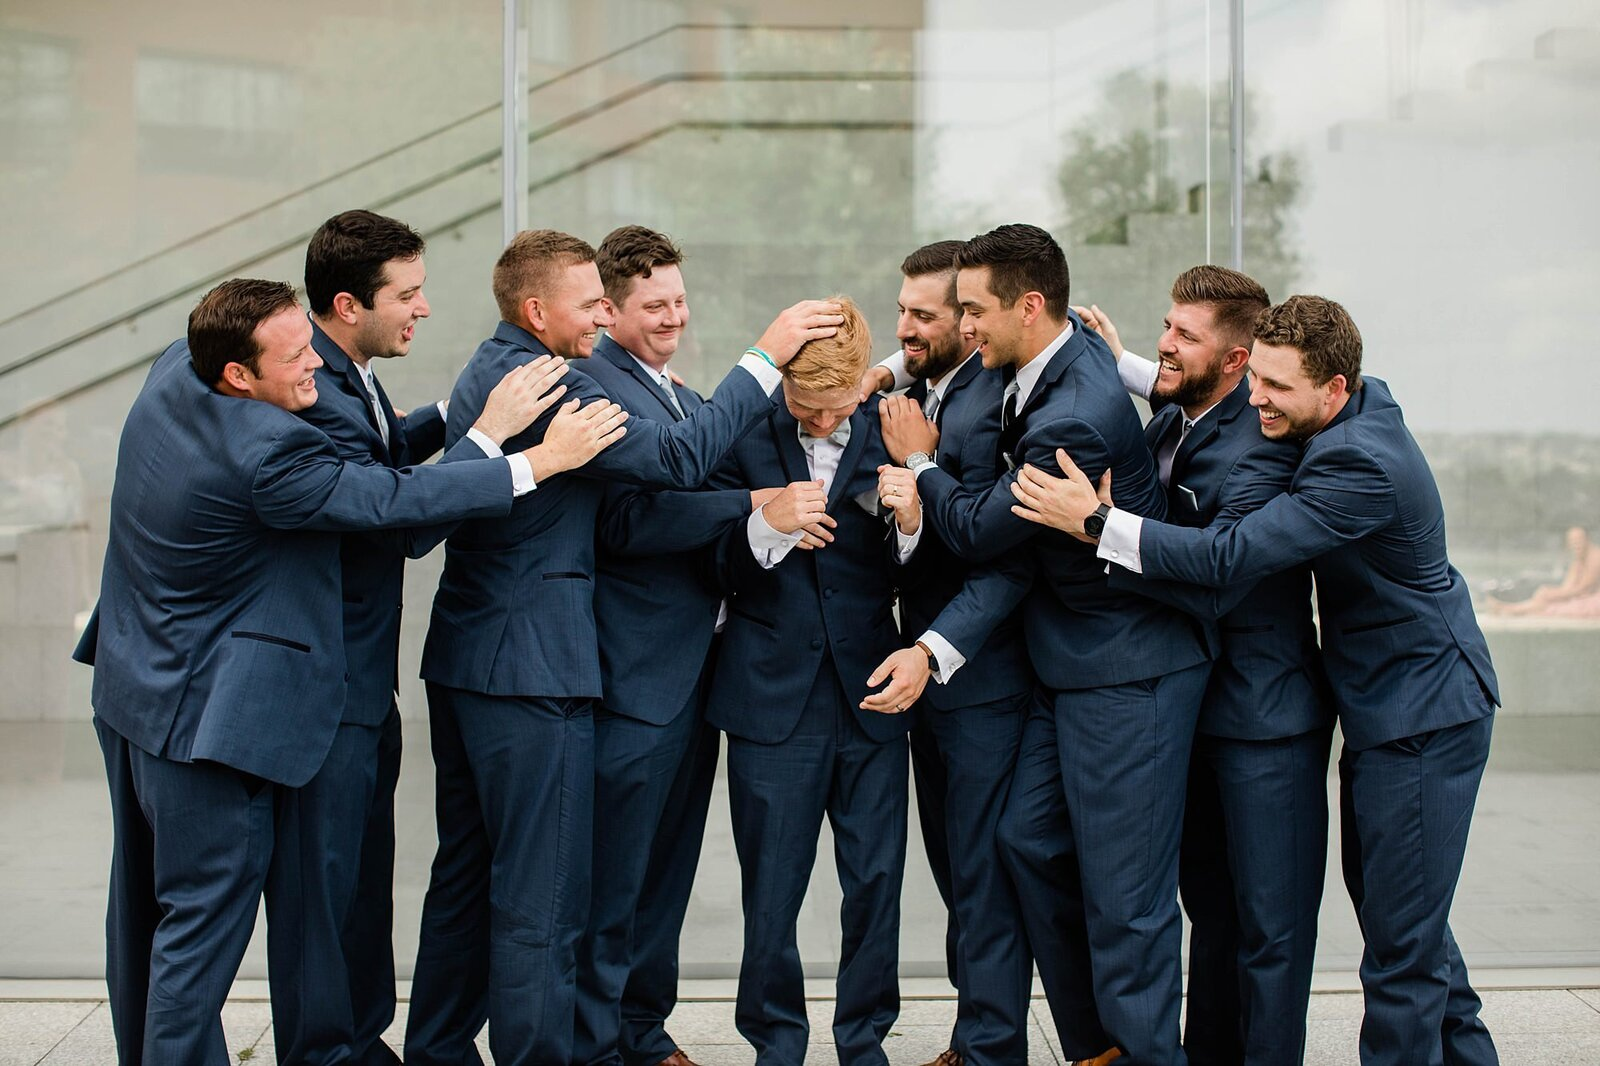 Groom and groomsmen horseplay in front of Nerman Museum